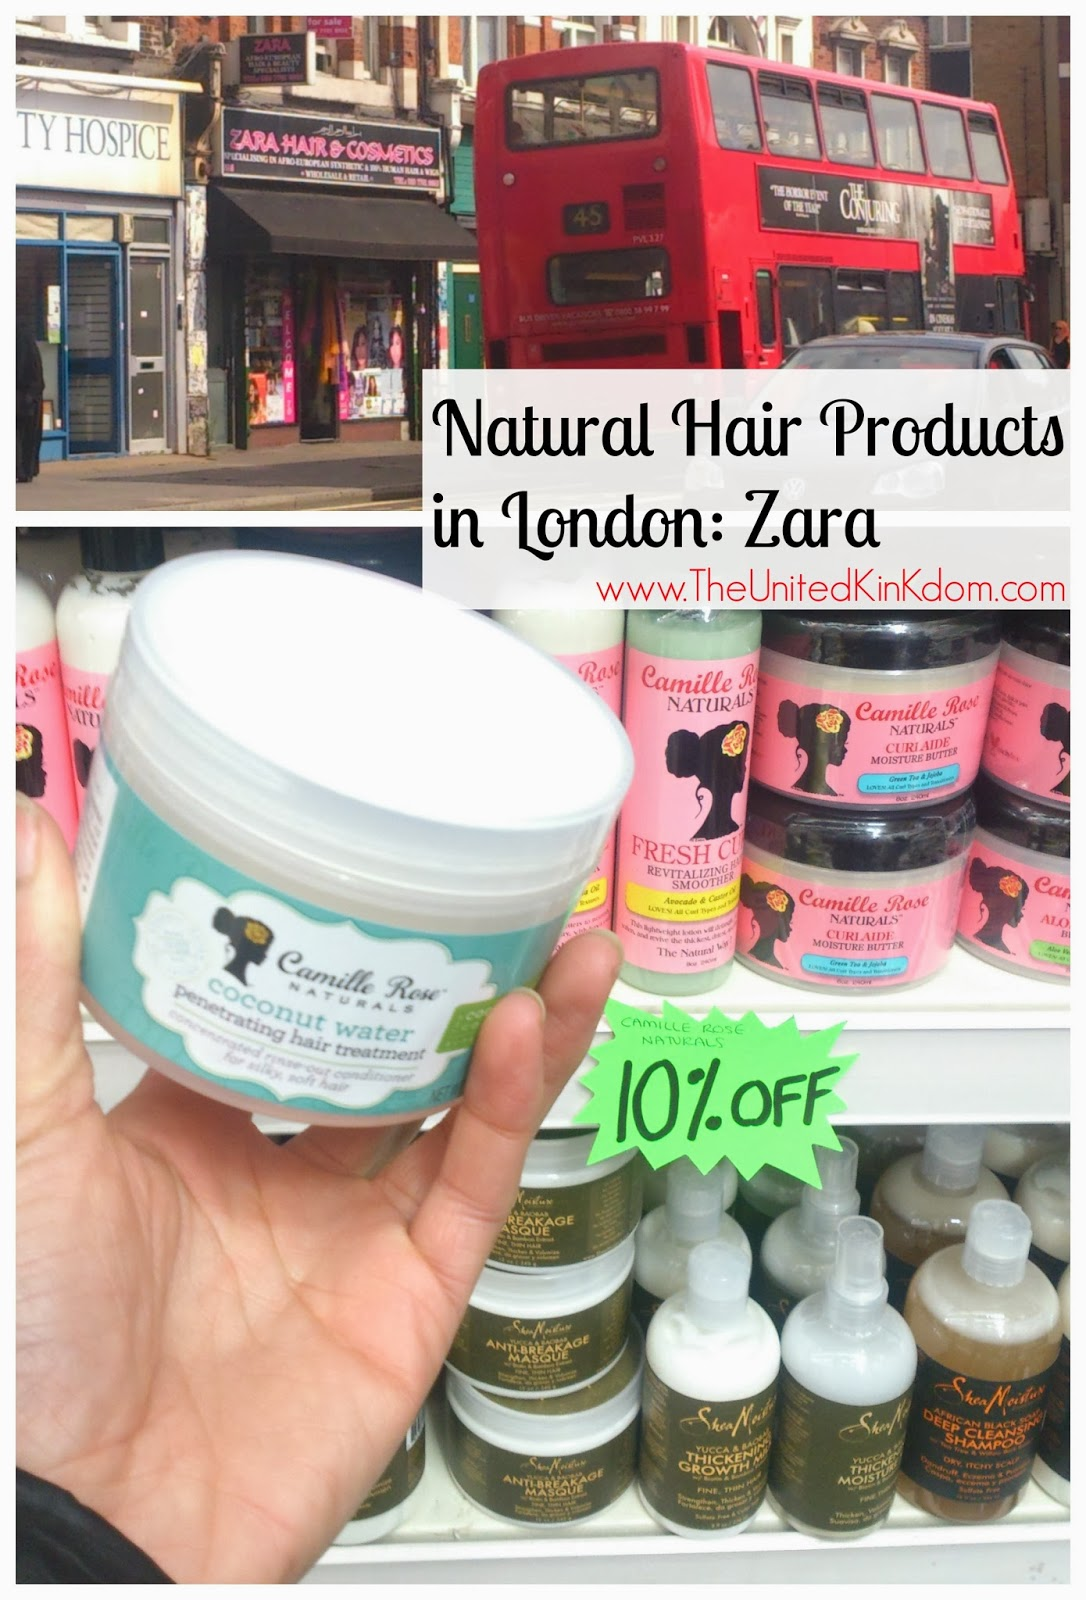 Entwine Natural Hair Products